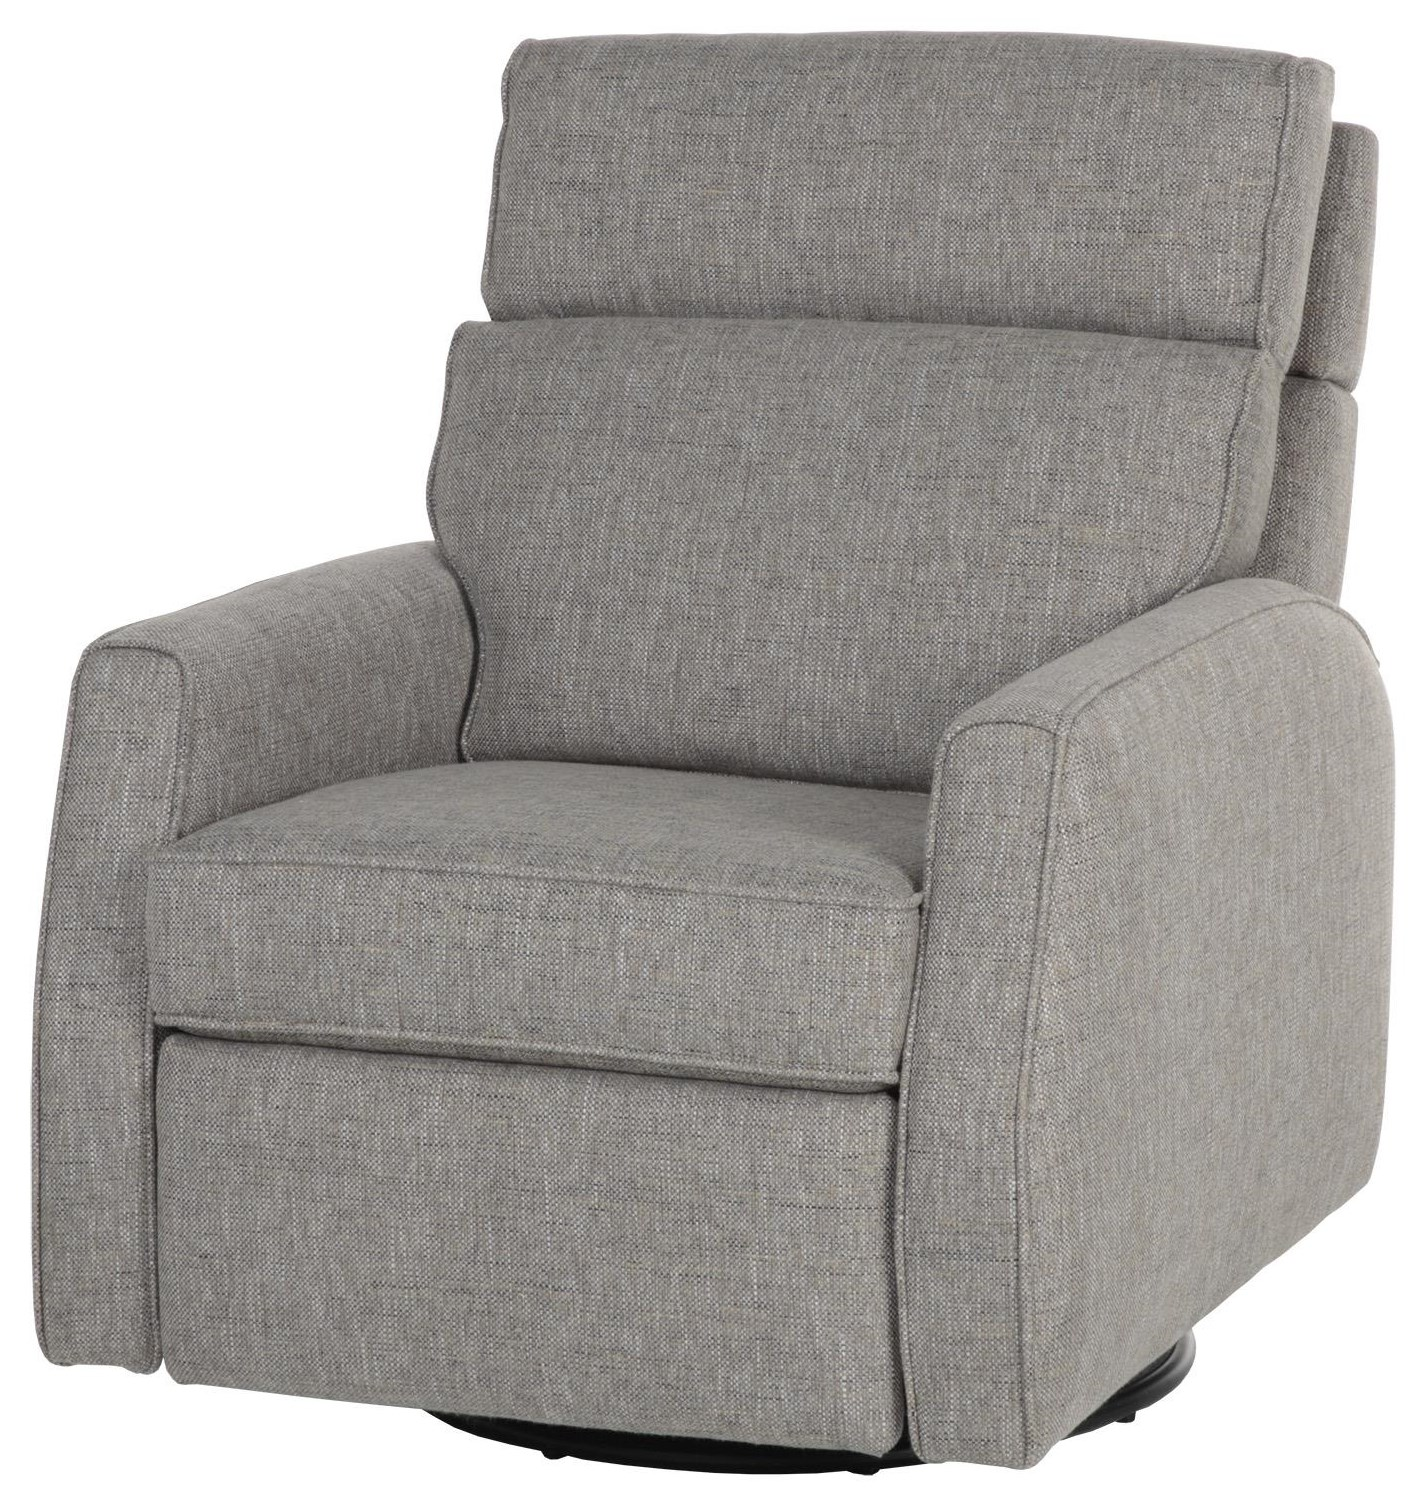 Chelsea Swivel Recliner by Justice Furniture & Bedding at Crowley Furniture & Mattress